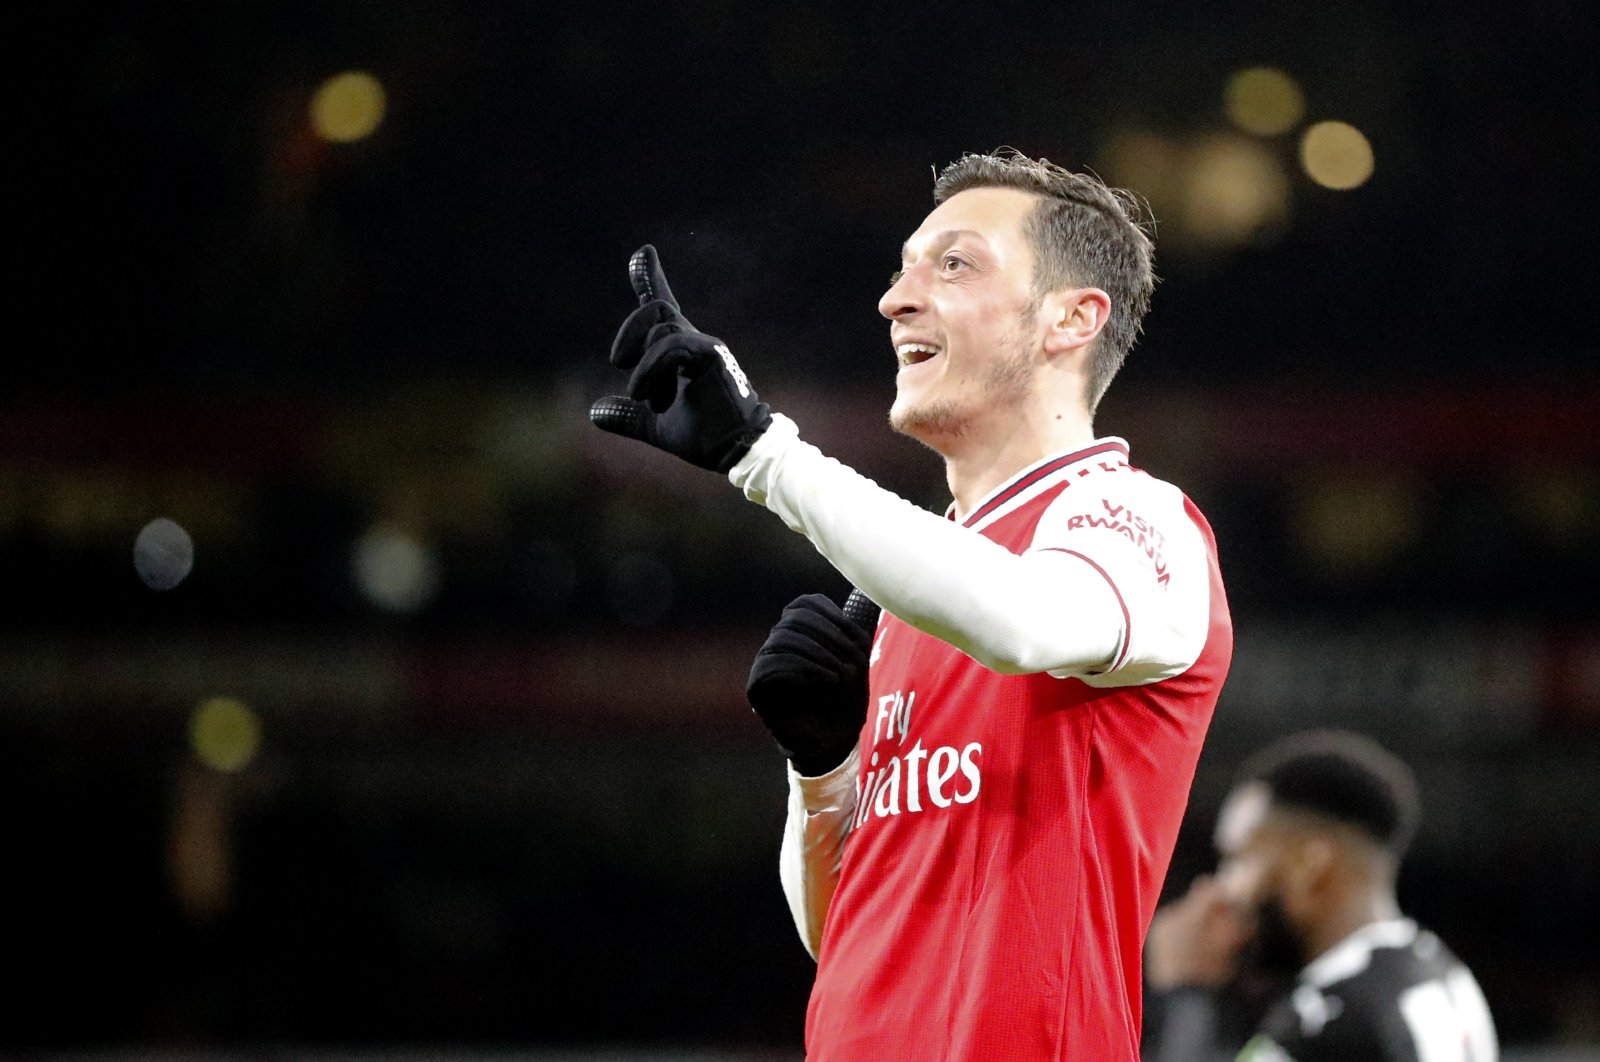 Arsenal's Mesut Özil celebrates during a Premier League match against Newcastle United at the Emirates Stadium in London, Britain, Feb. 16, 2020. (AP Photo)